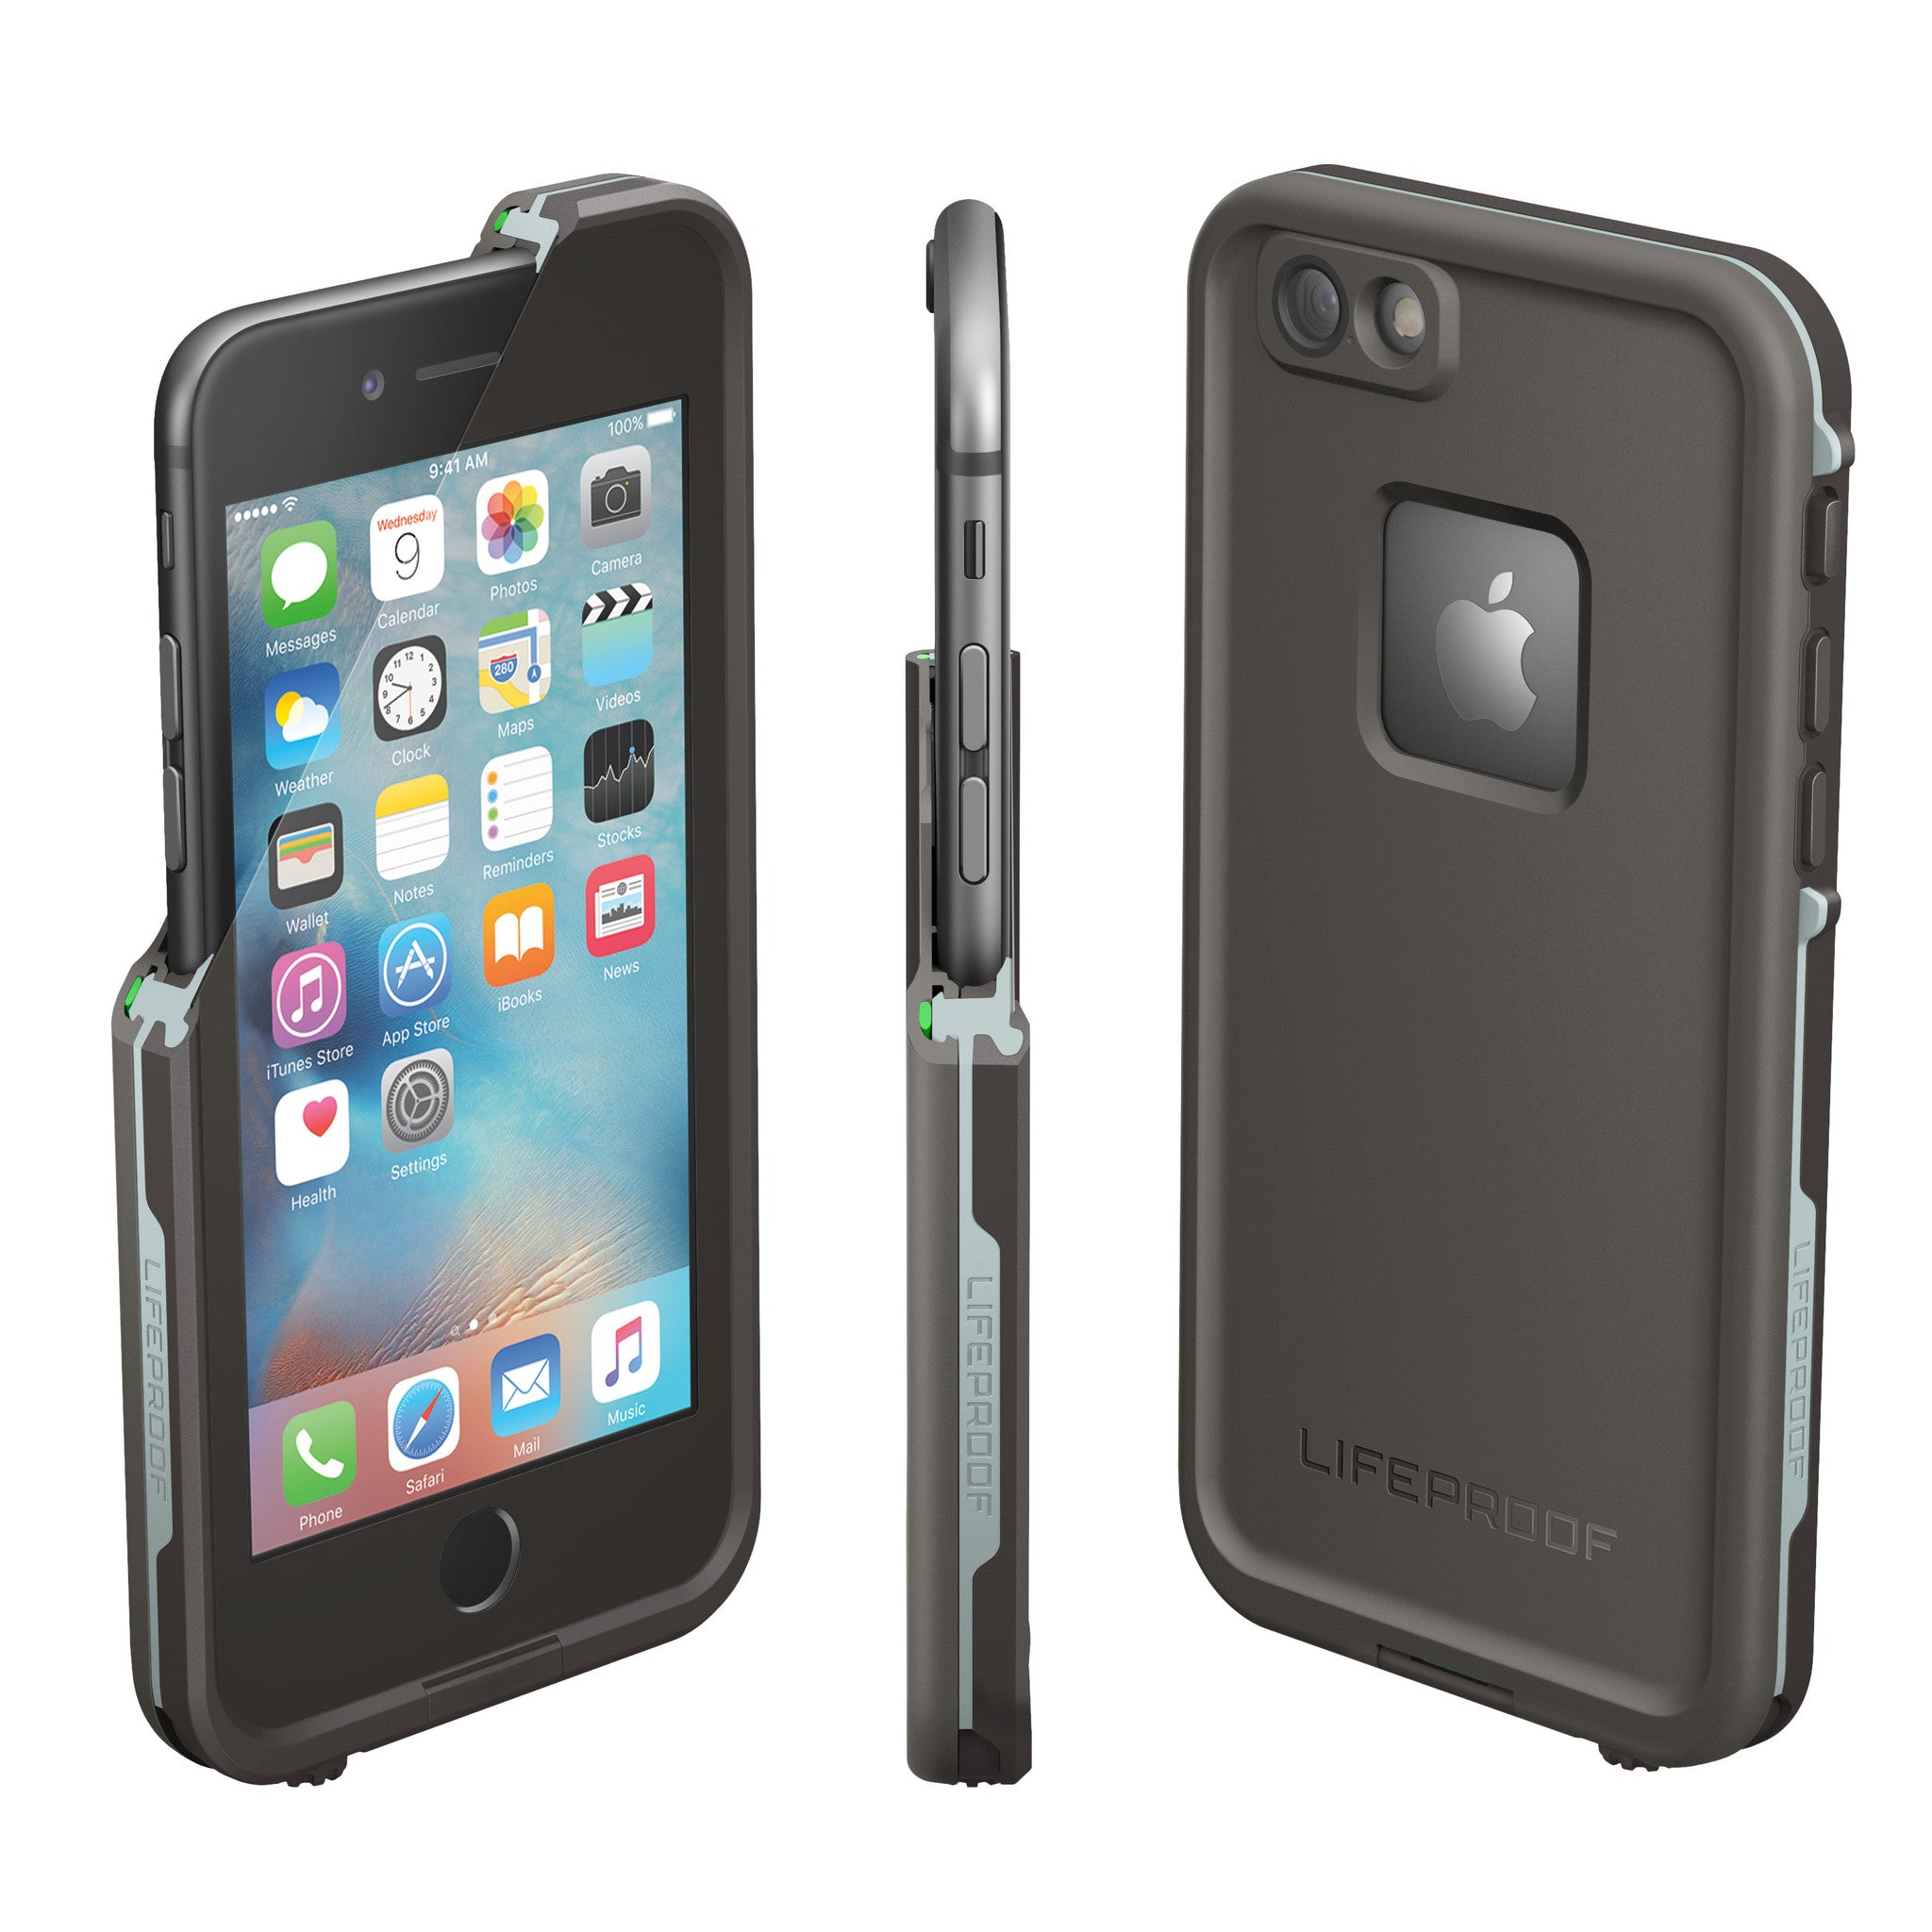 huge selection of c9d98 7b6ed Lifeproof Fre Case For iPhone 6/6S - Grind Grey